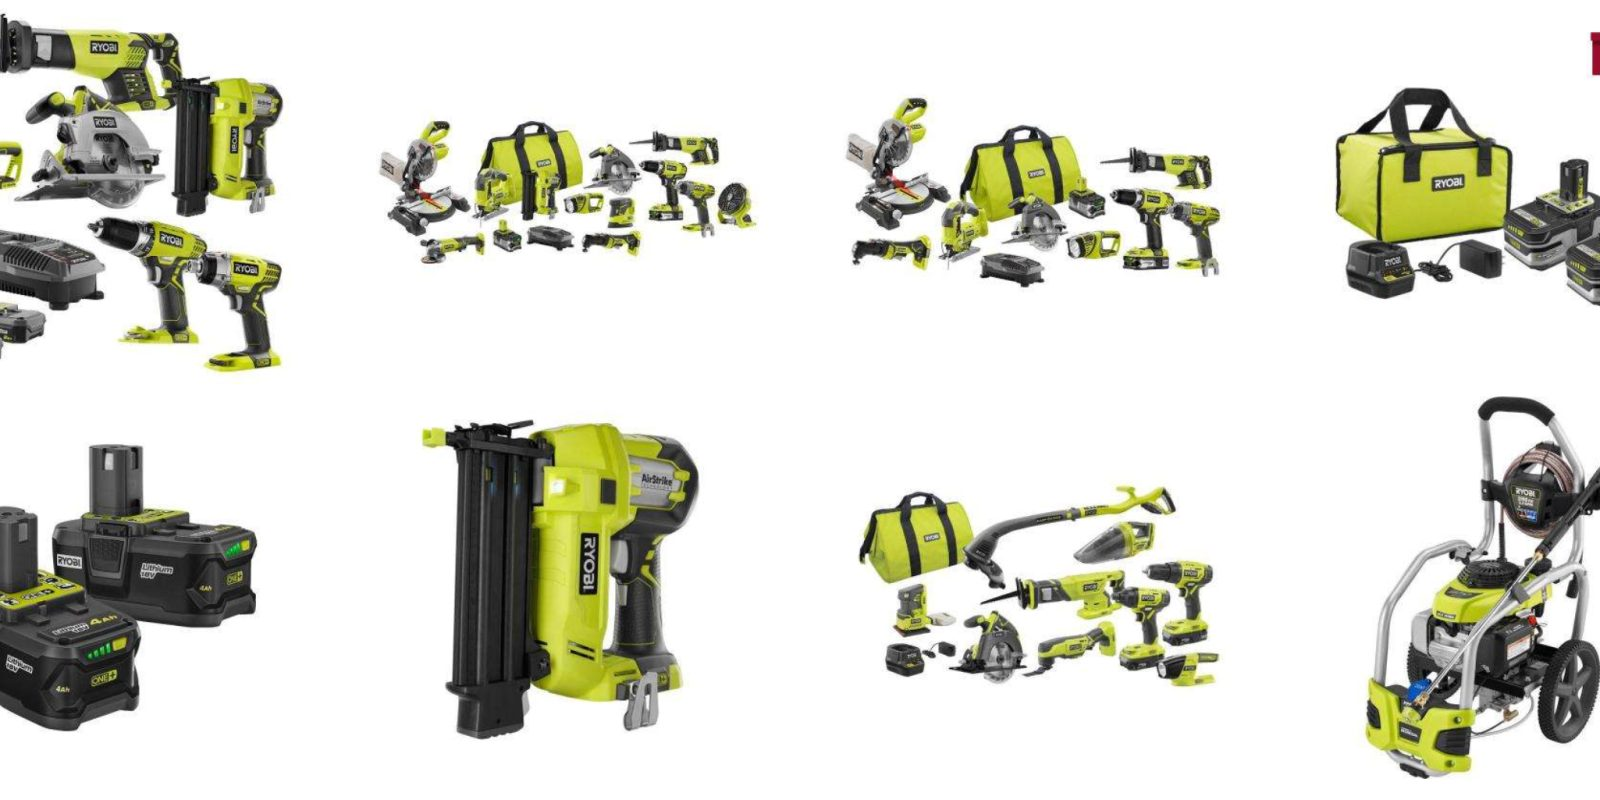 Ryobi Black Friday Tool Sale At Home Depot Takes Up To 40